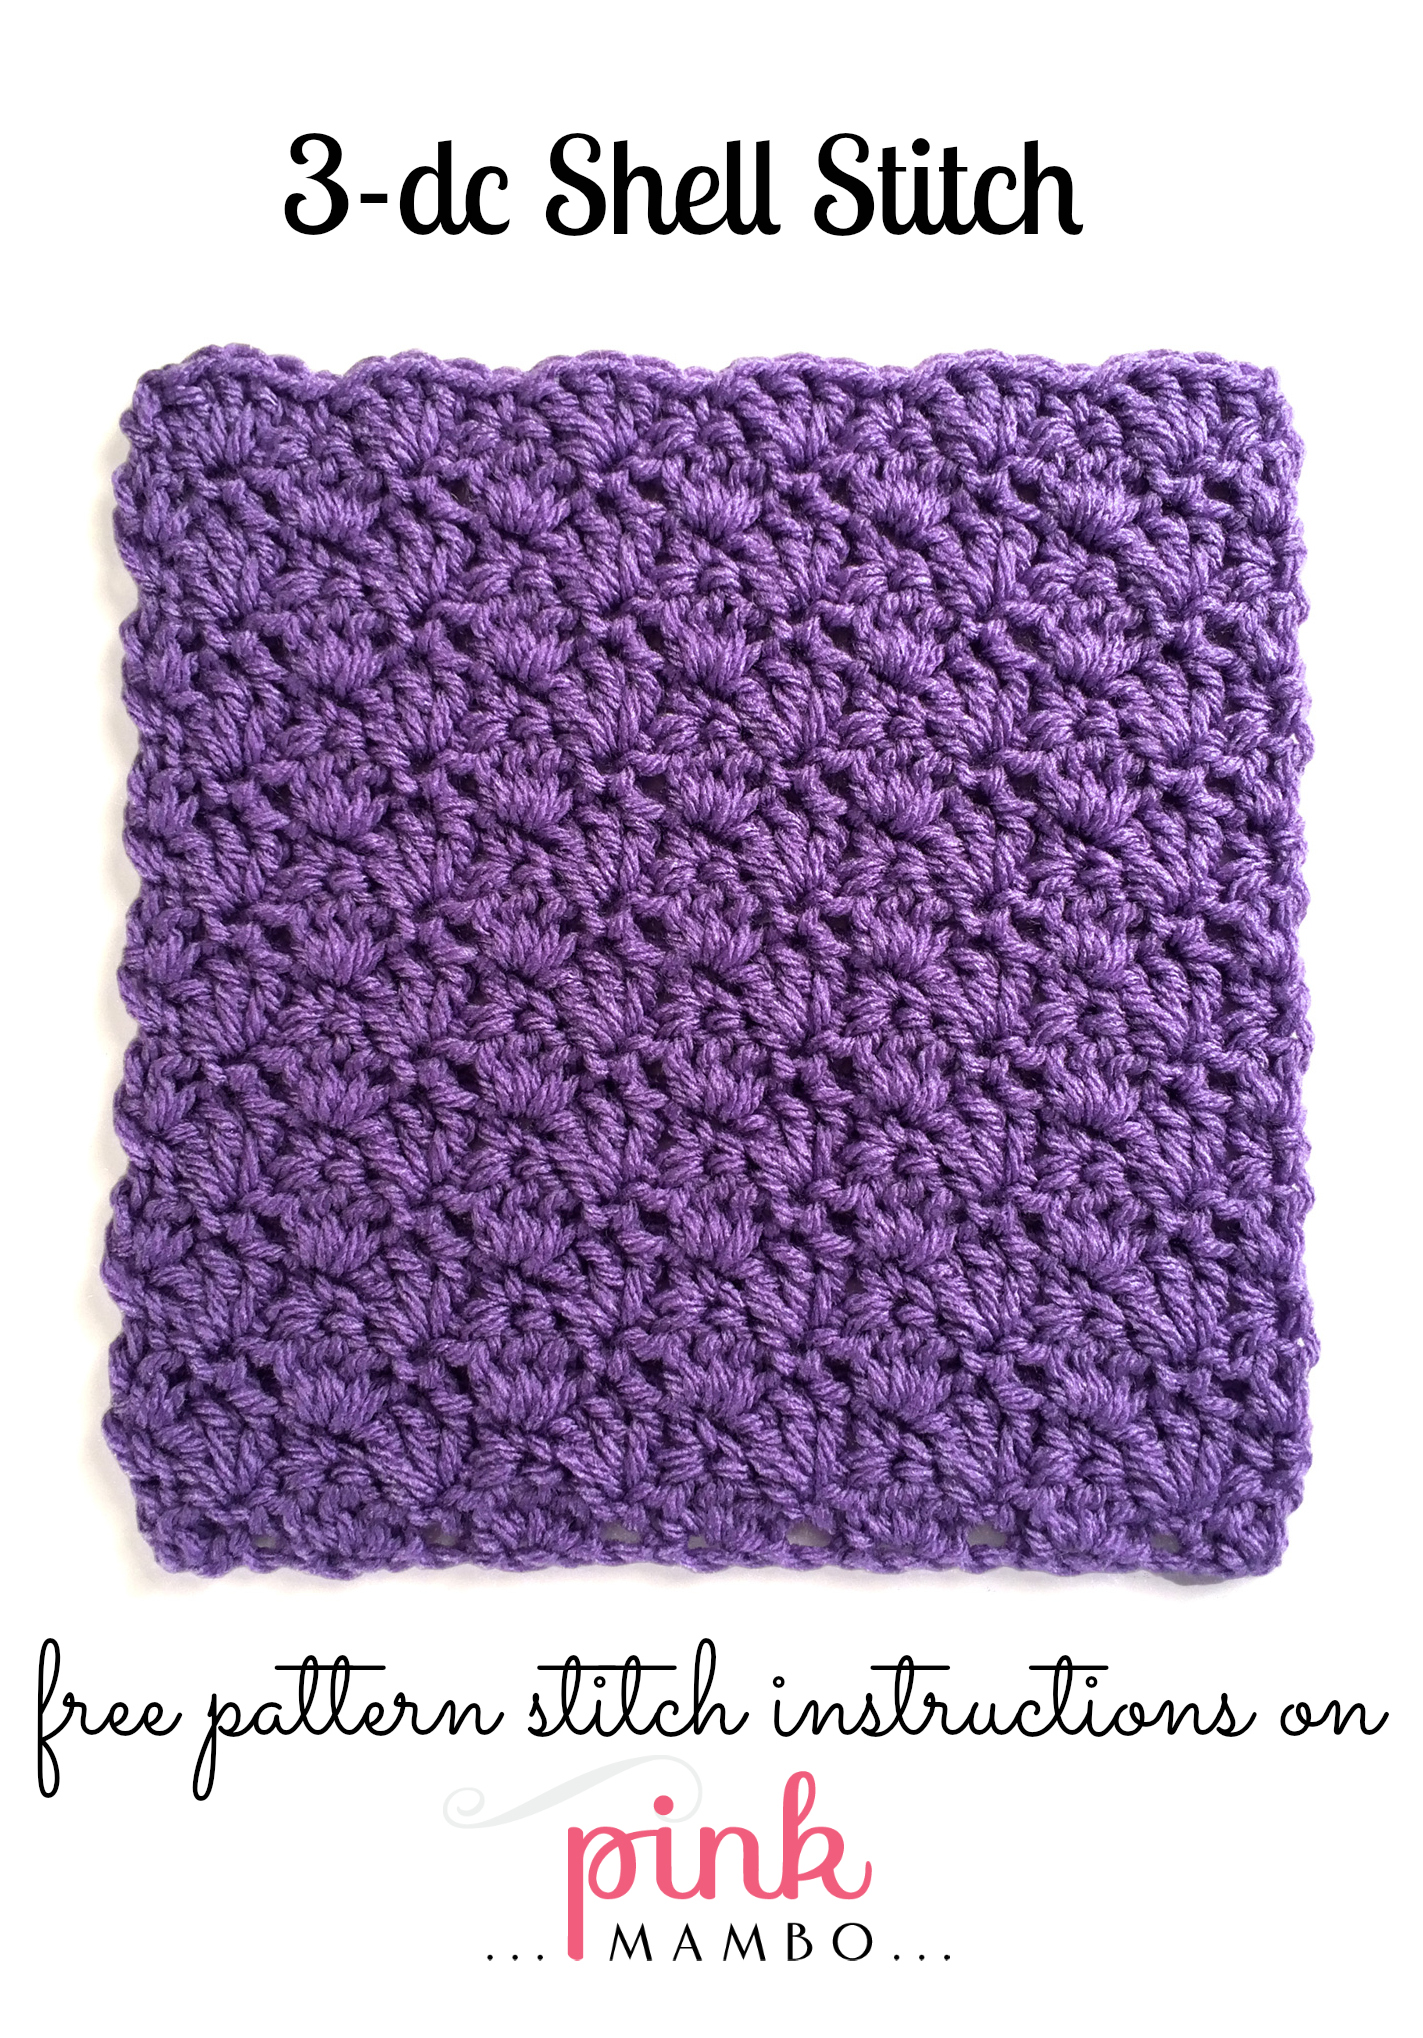 Crochet Stitches Shell : stitch pattern that?s perfect for scarves and all kinds of crochet ...